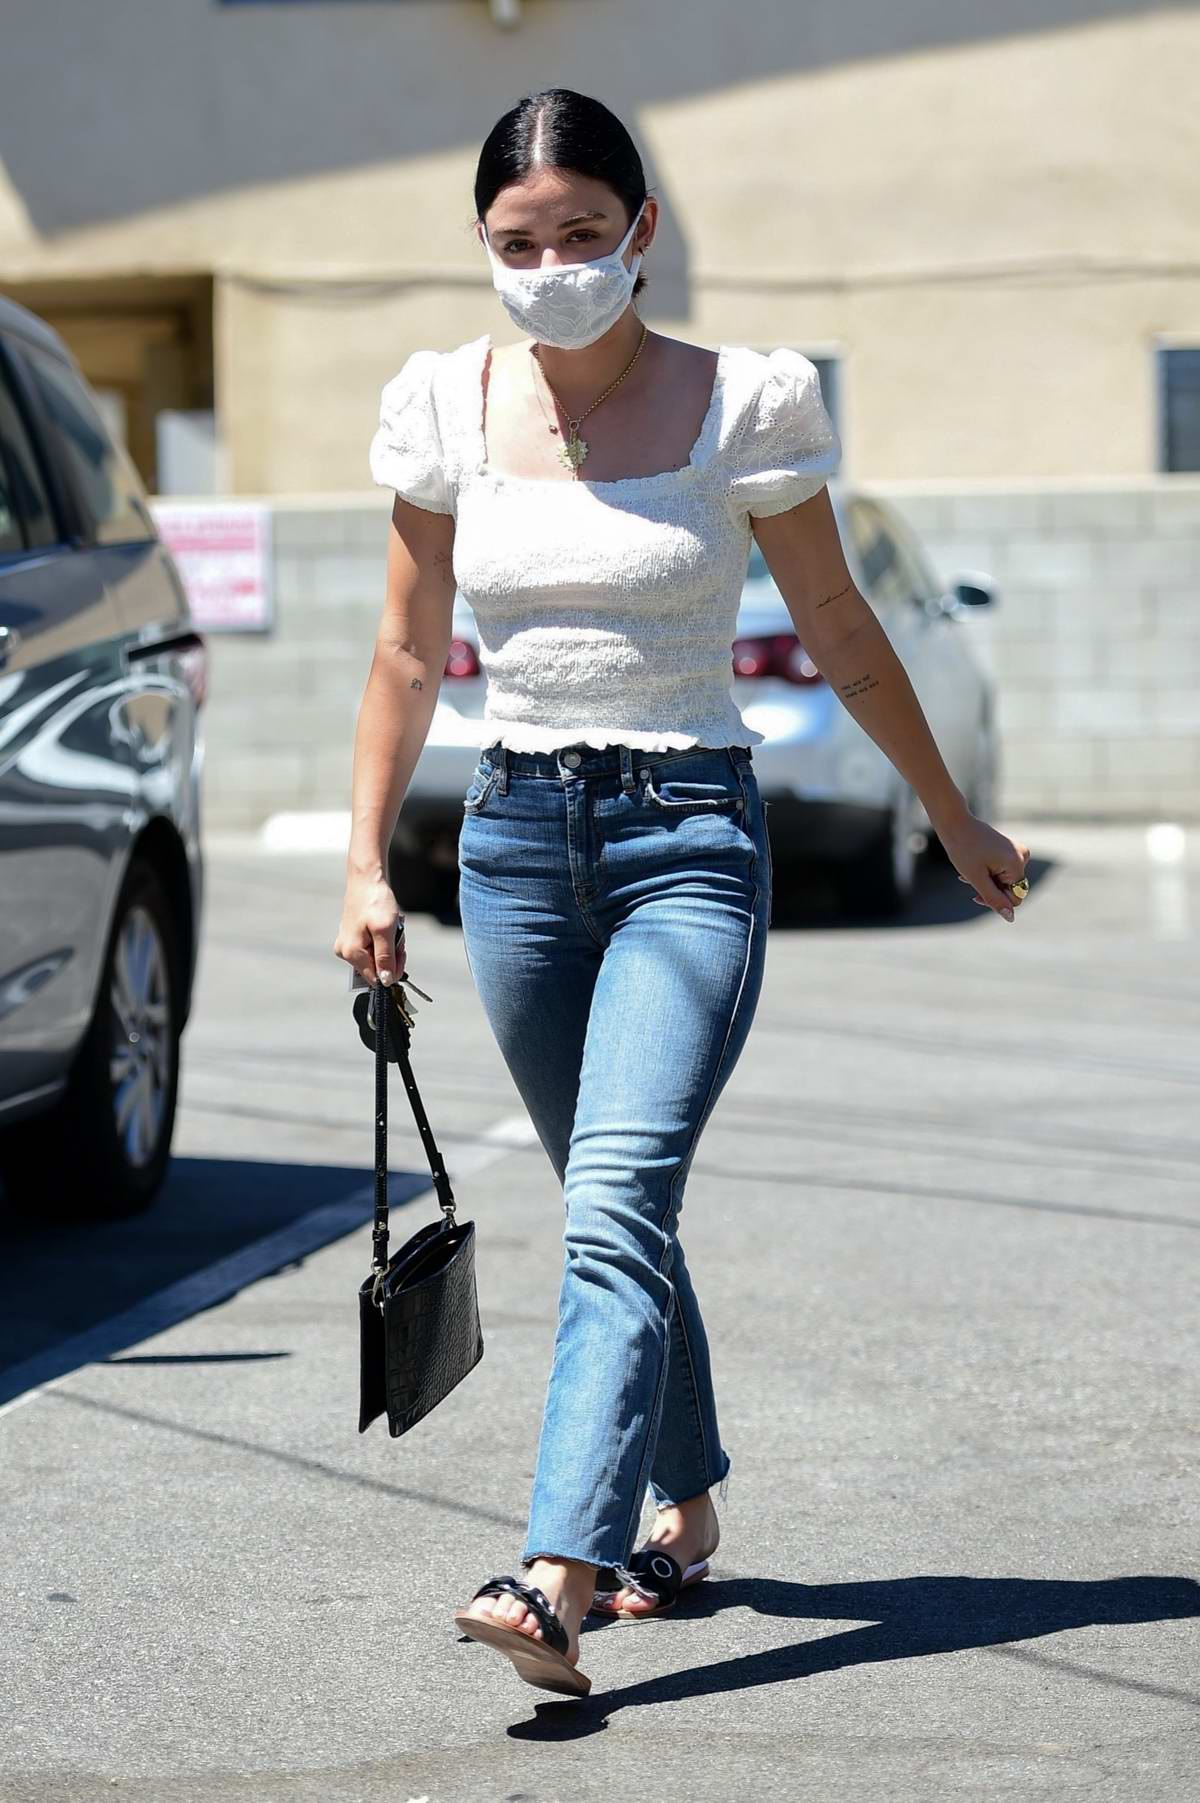 Lucy Hale looks great in white top and jeans while visiting a skin care and waxing studio in Los Angeles